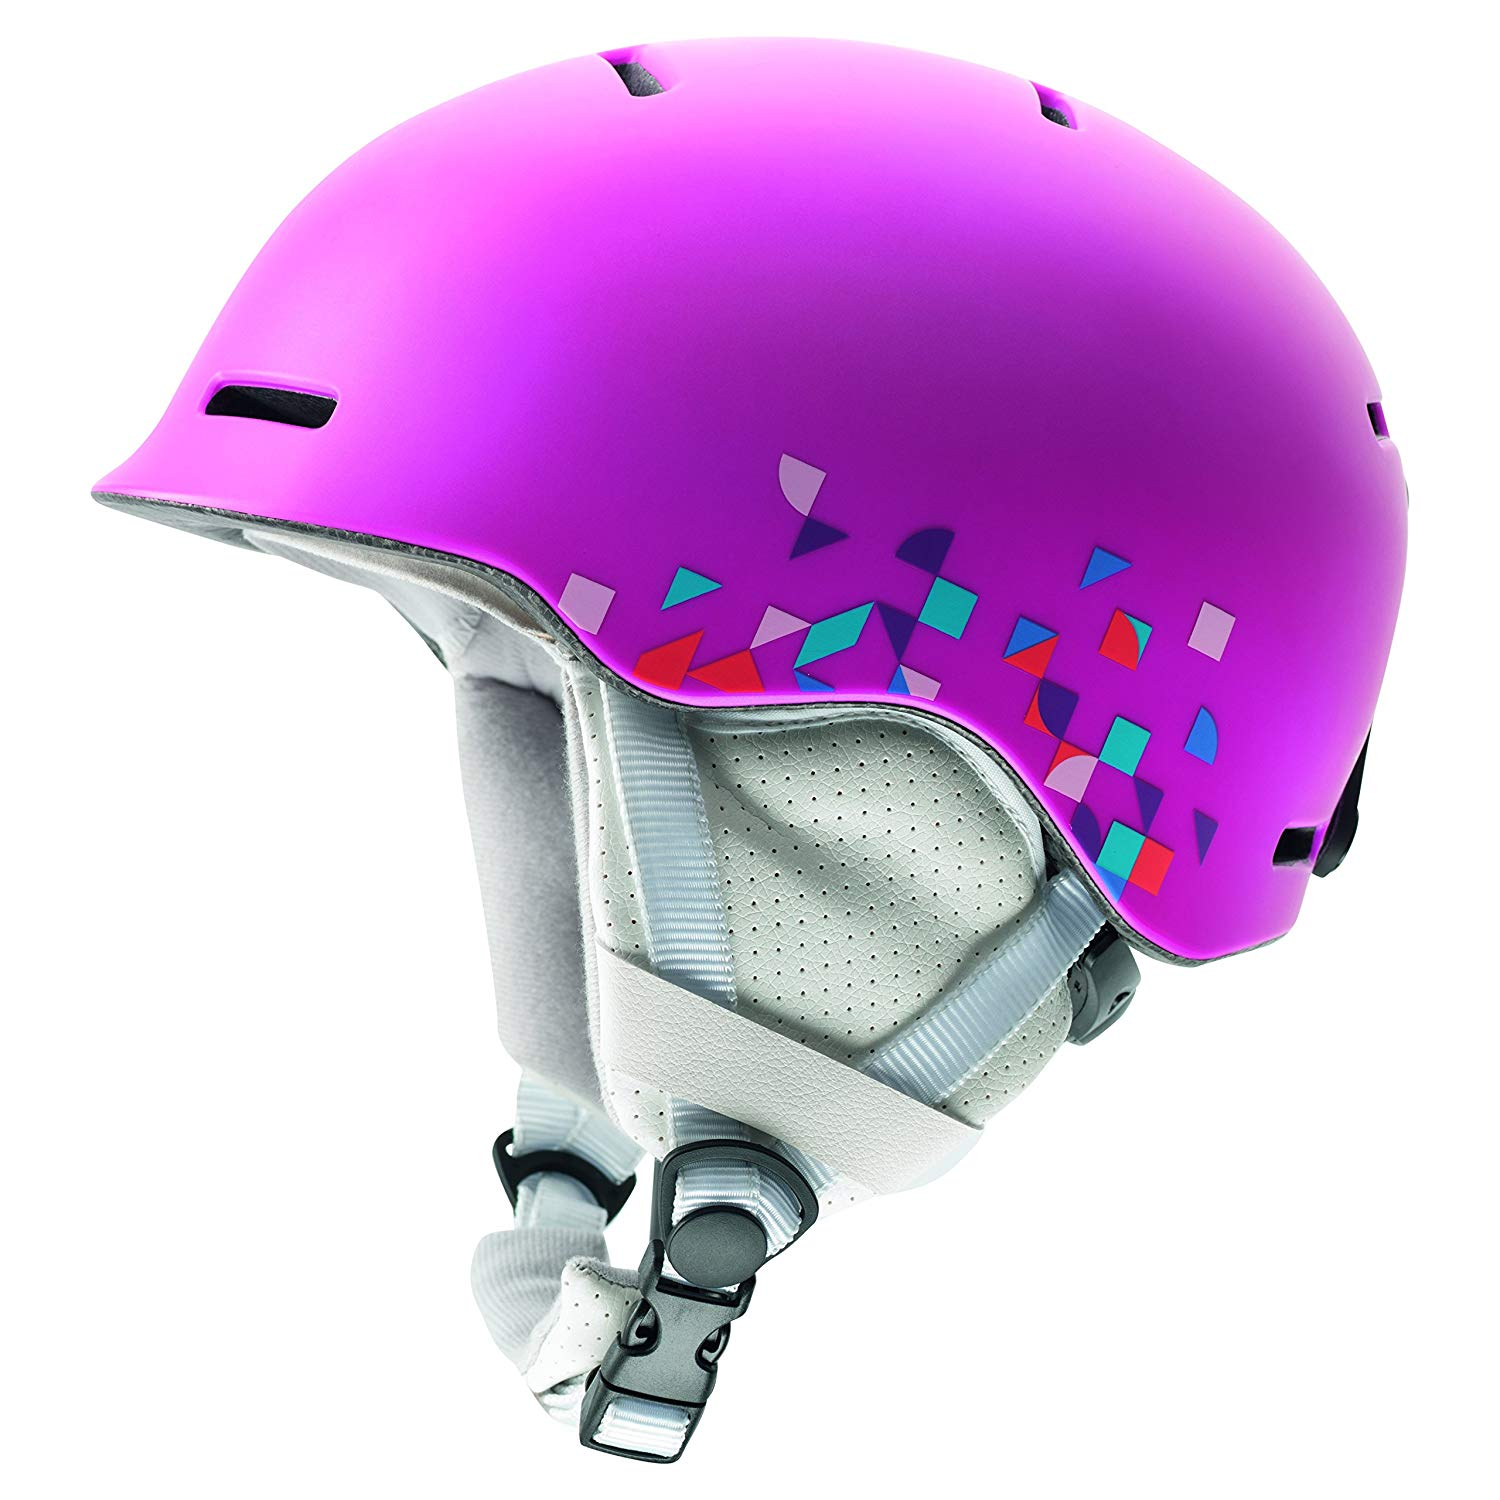 c159b55ca8b66 Get Quotations · Atomic Junior s 2016 17 Mentor Jr Alpine Helmet - AN50053